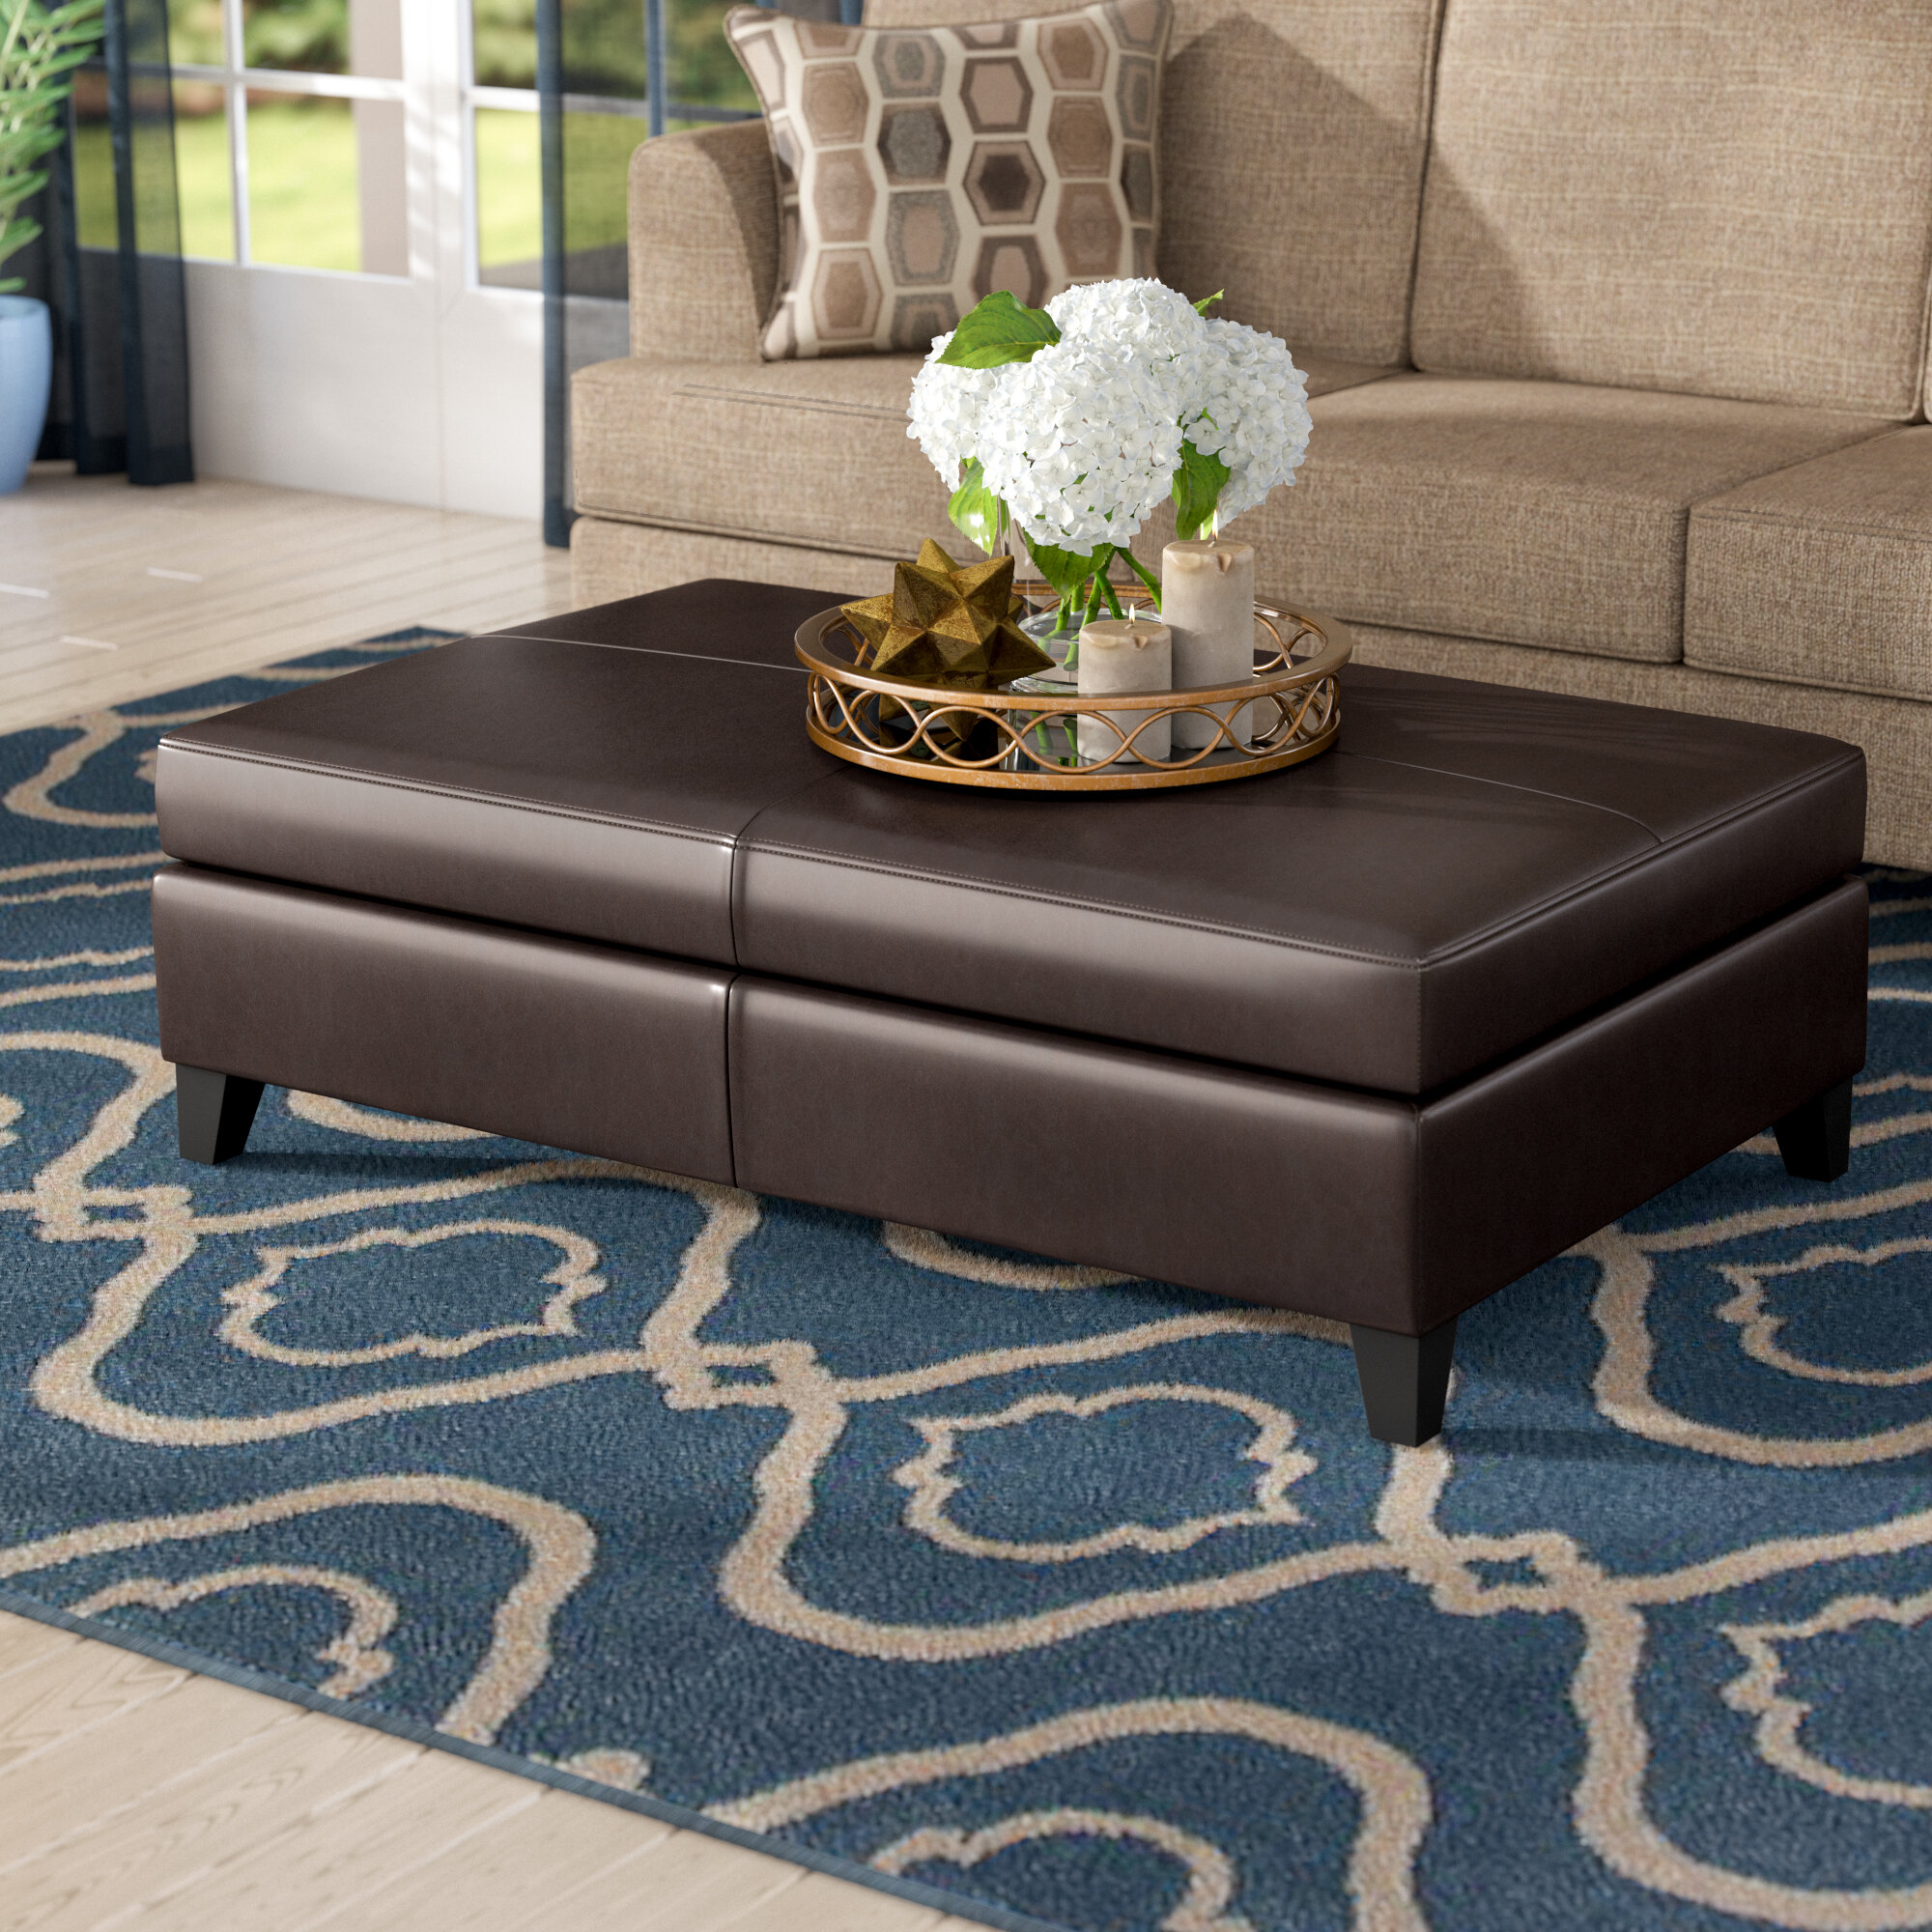 Brilliant Fordbridge Storage Ottoman Gmtry Best Dining Table And Chair Ideas Images Gmtryco